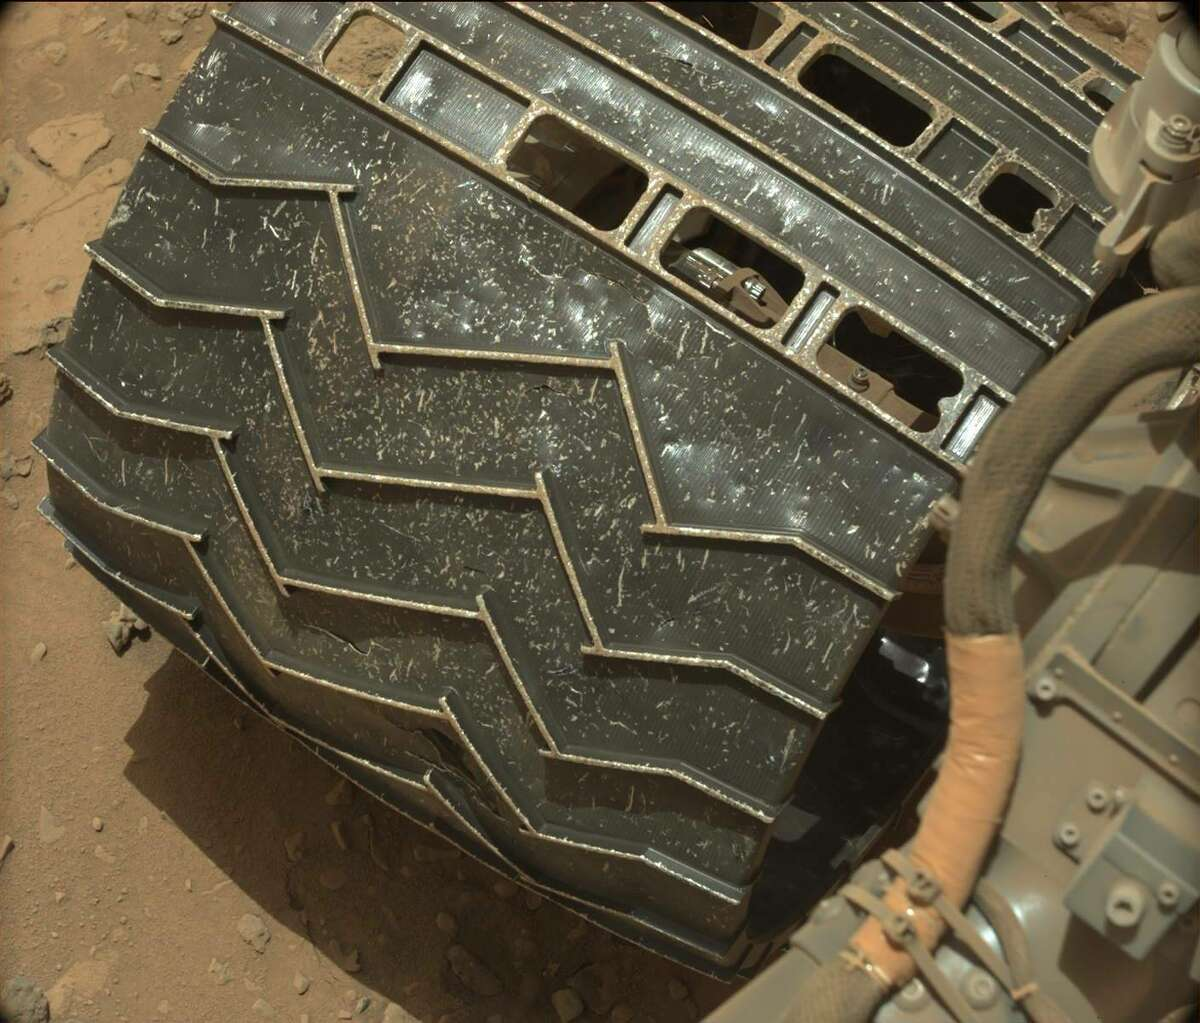 These before and after images from the Mars rover Curiosity show the wear and tear on the rover since it landed on Mars on Aug. 6, 2012. Each image is labeled with both the Sol day (Martian